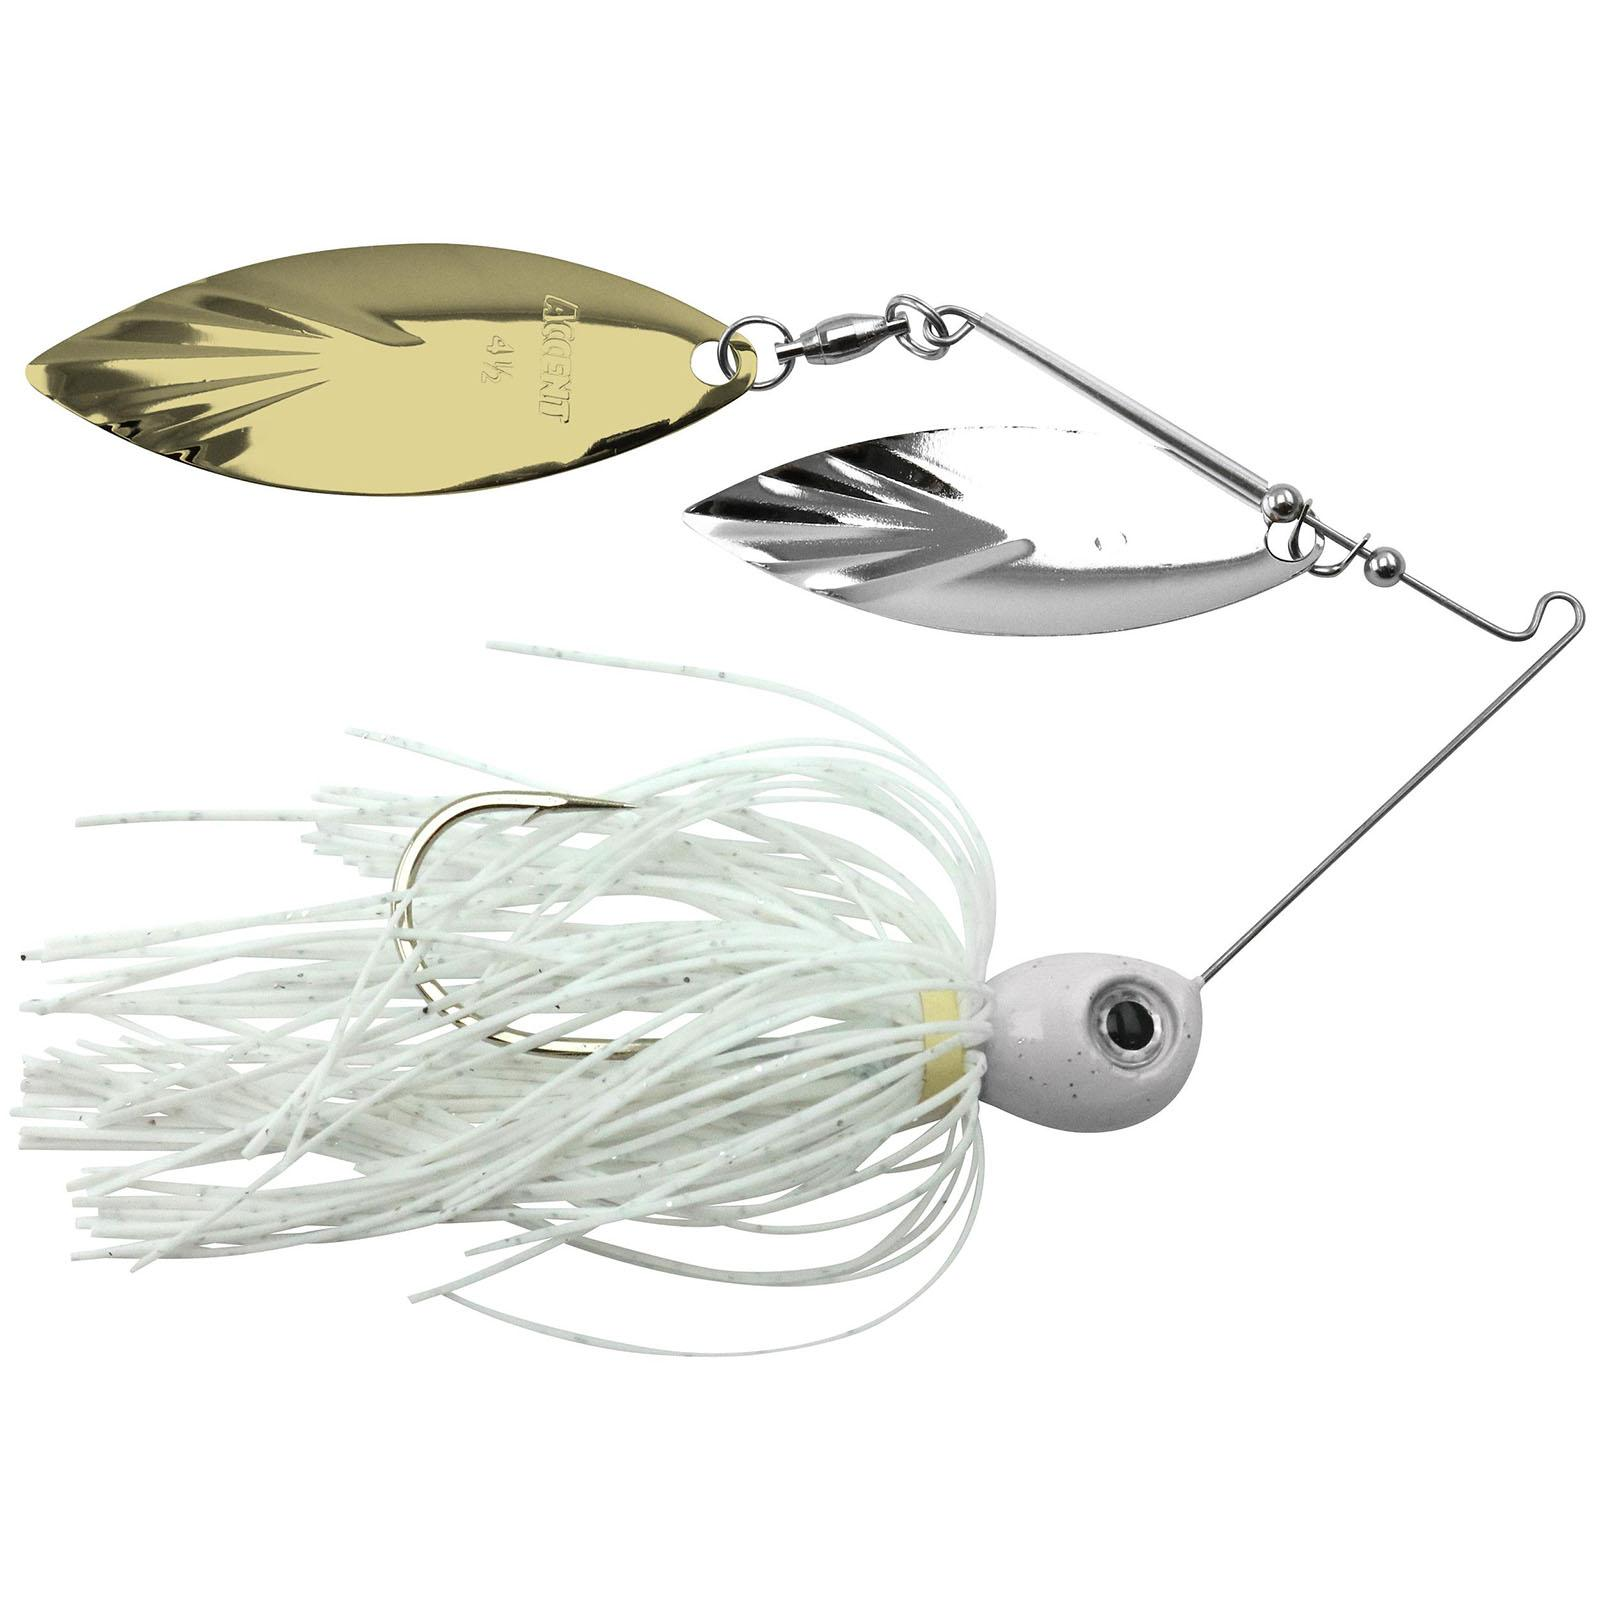 Accent River Special Double Willow Spinnerbait Color Nickel/Gold Blades - White Skirt Weight 1/4 oz thumbnail